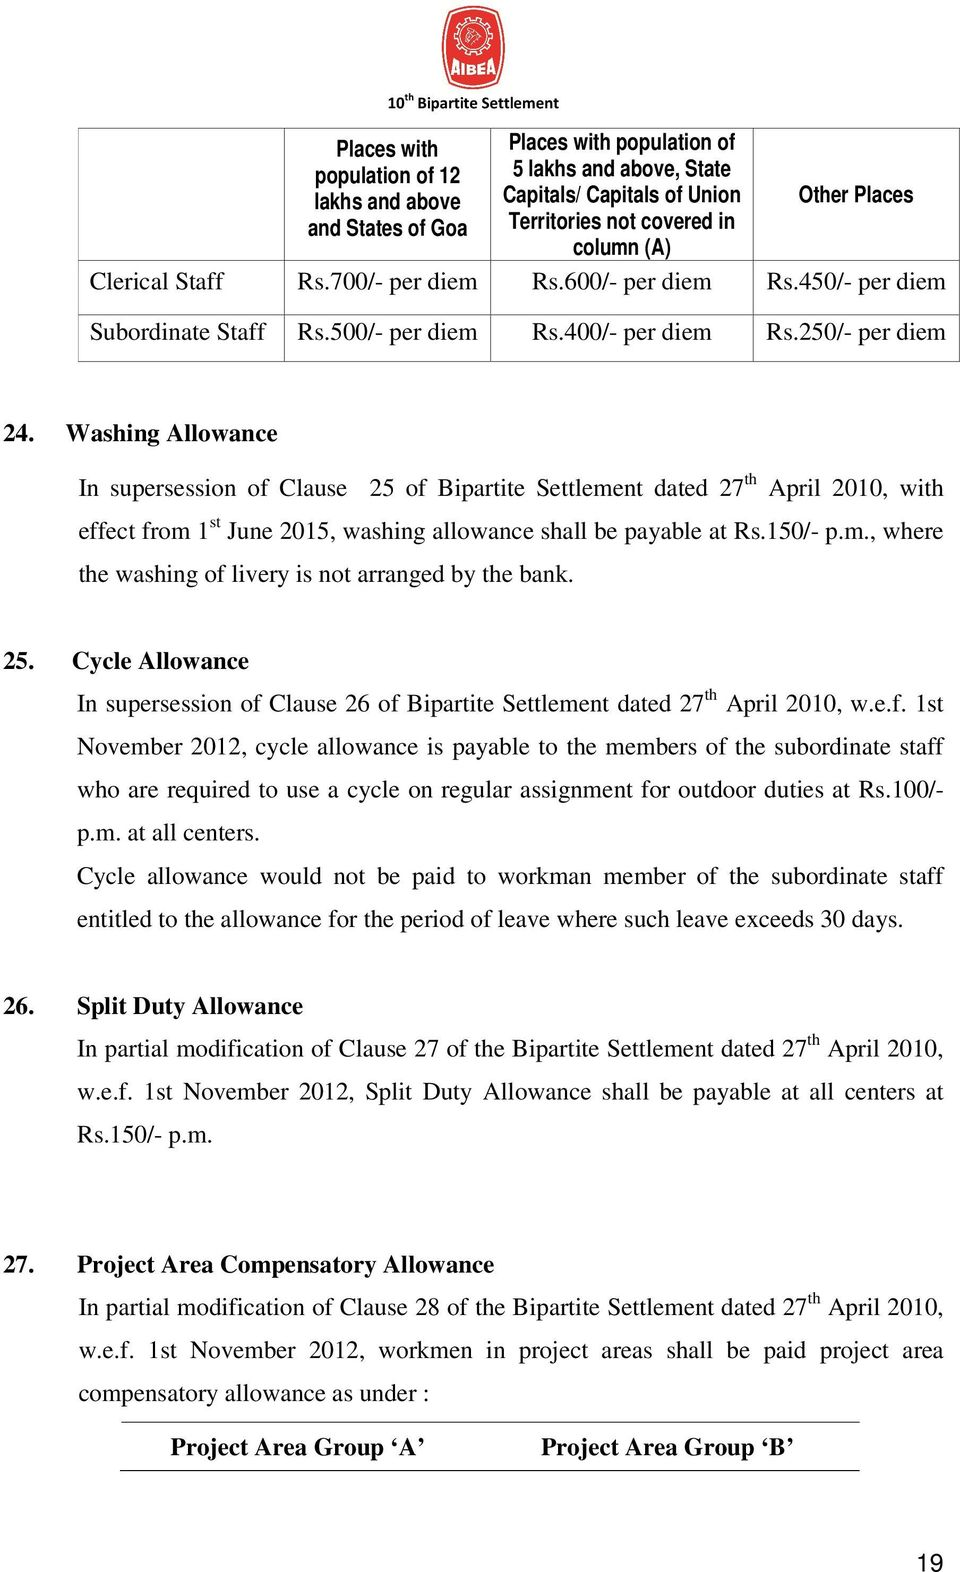 Washing Allowance In supersession of Clause 25 of Bipartite Settlement dated 27 th April 2010, with effect from 1 st June 2015, washing allowance shall be payable at Rs.150/- p.m., where the washing of livery is not arranged by the bank.